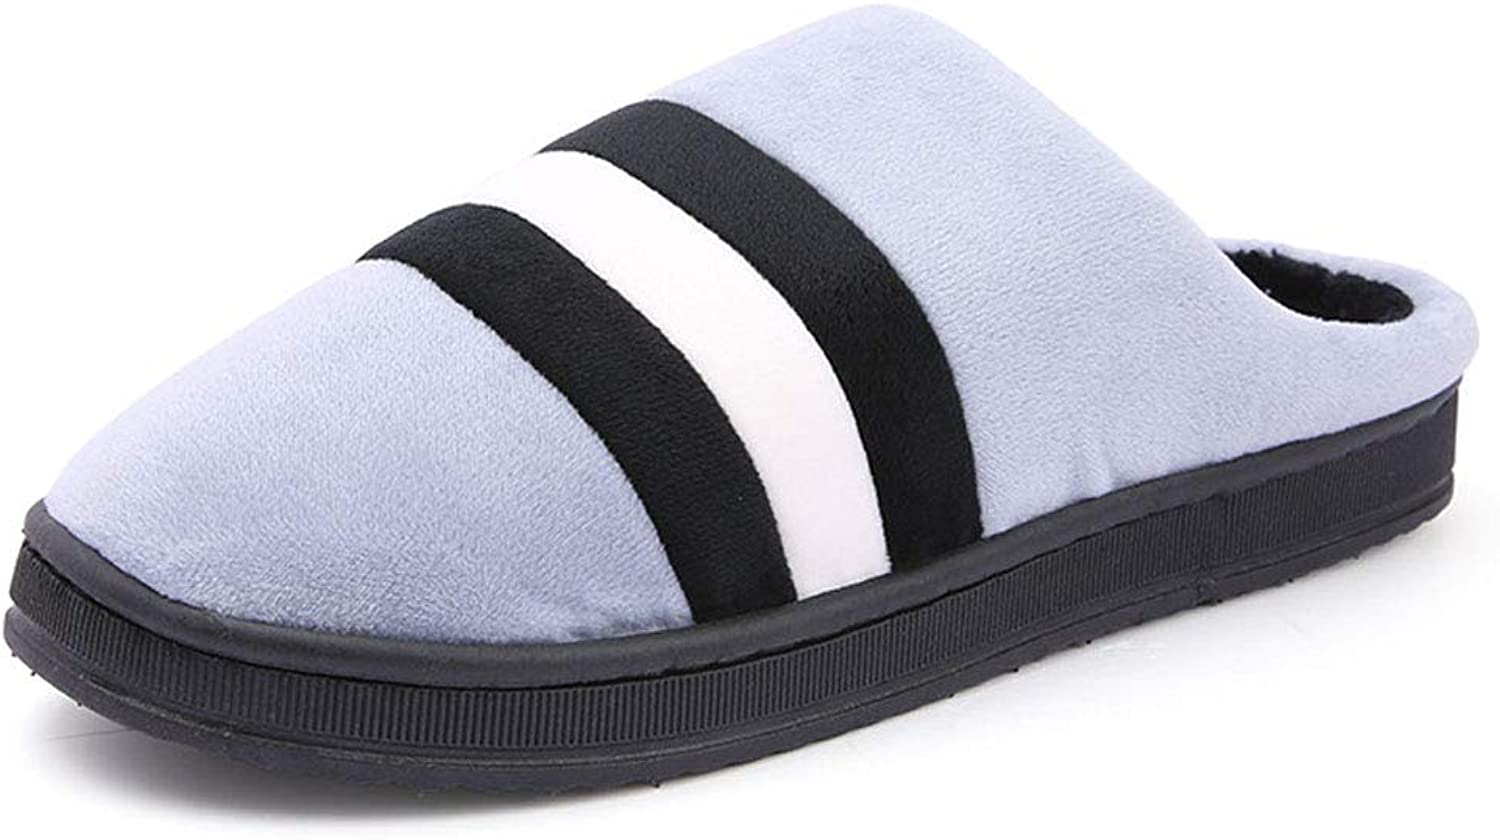 Winter Slippers Couple Men Women Indoor Soft Cotton Slippers Non-Slip Home Floor Striped Cotton shoes Comfortable Outdoor Warm shoes,bluee,40